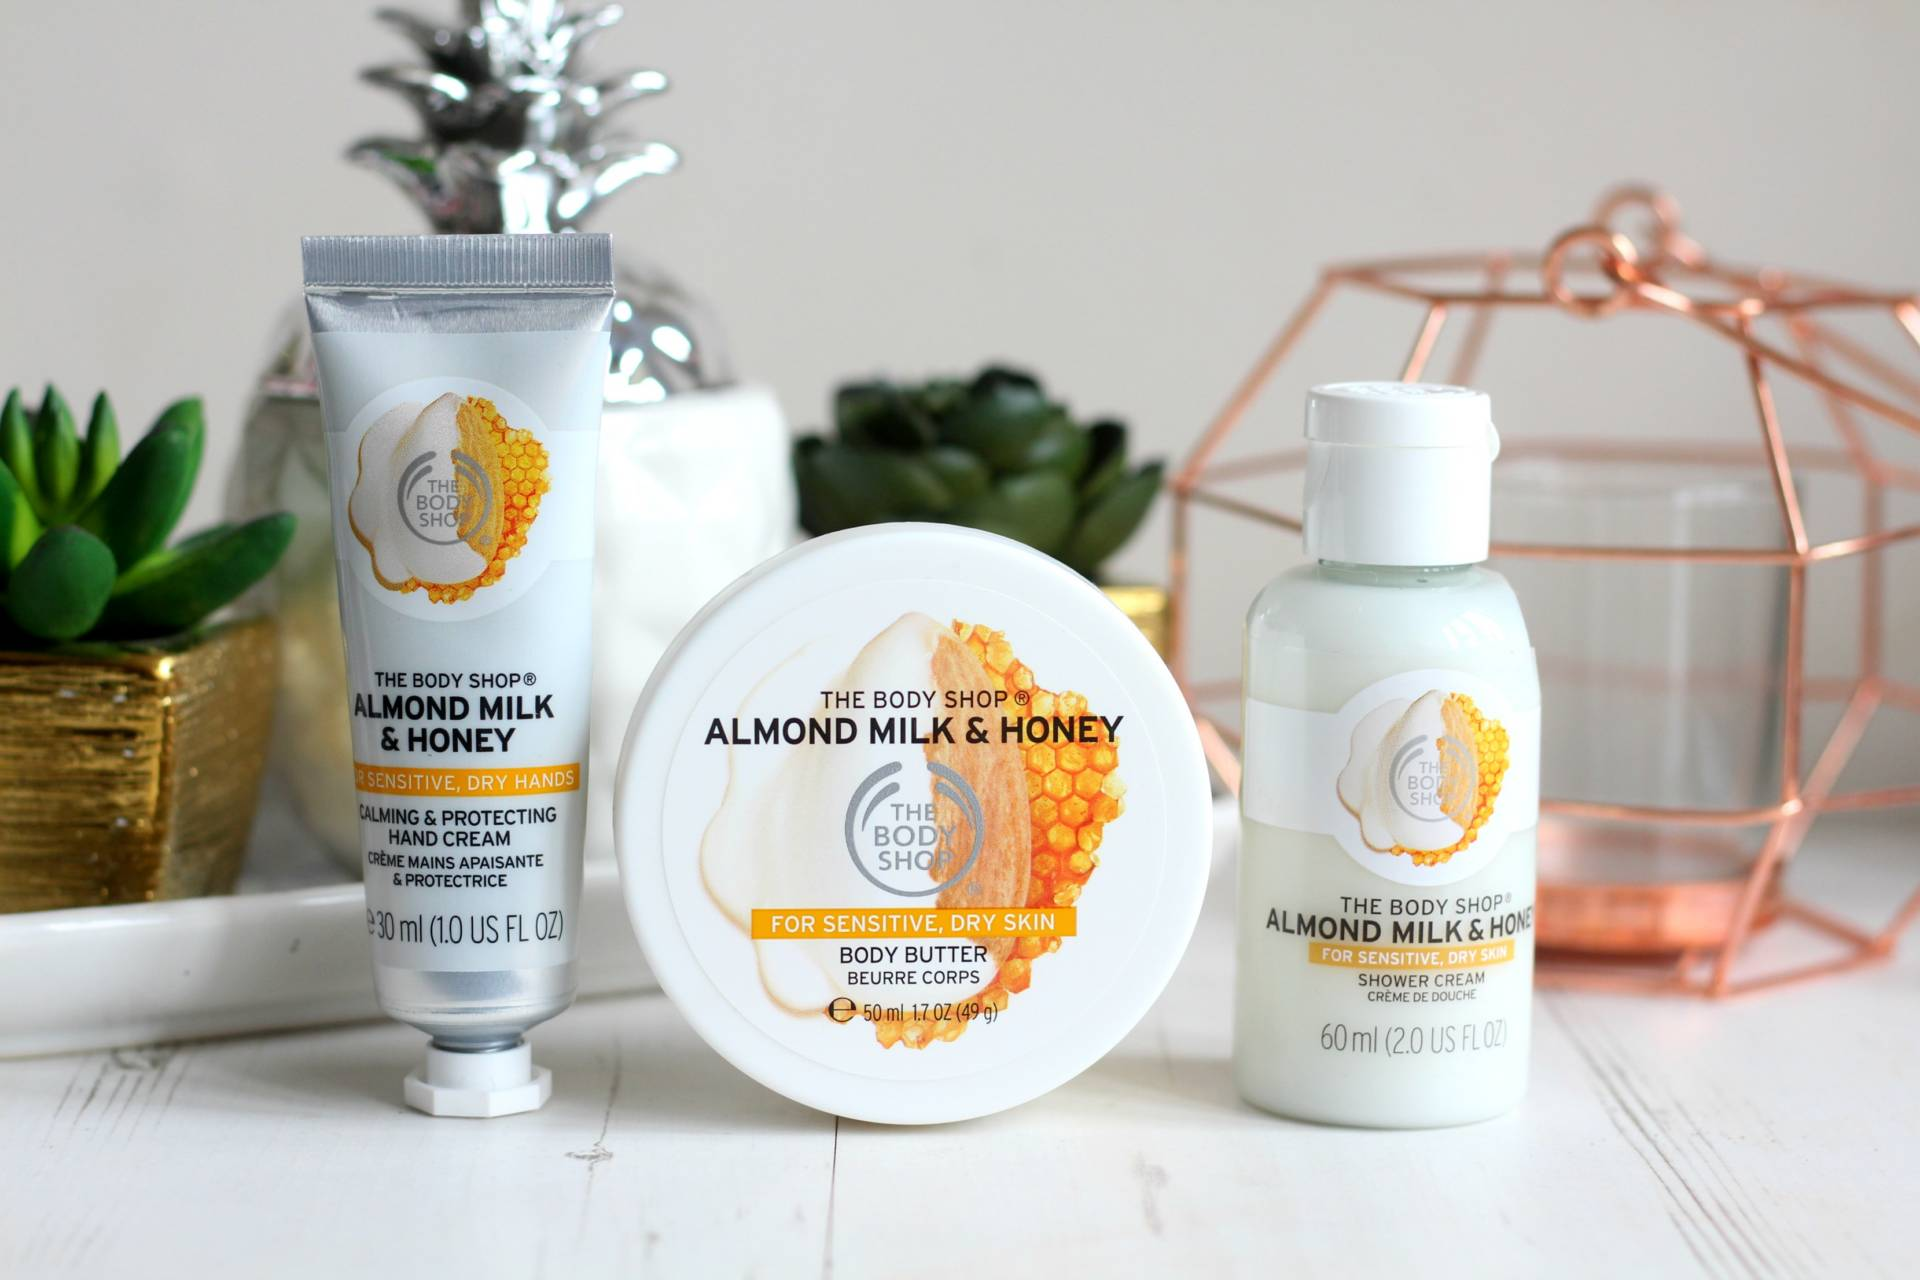 New in from The Body Shop